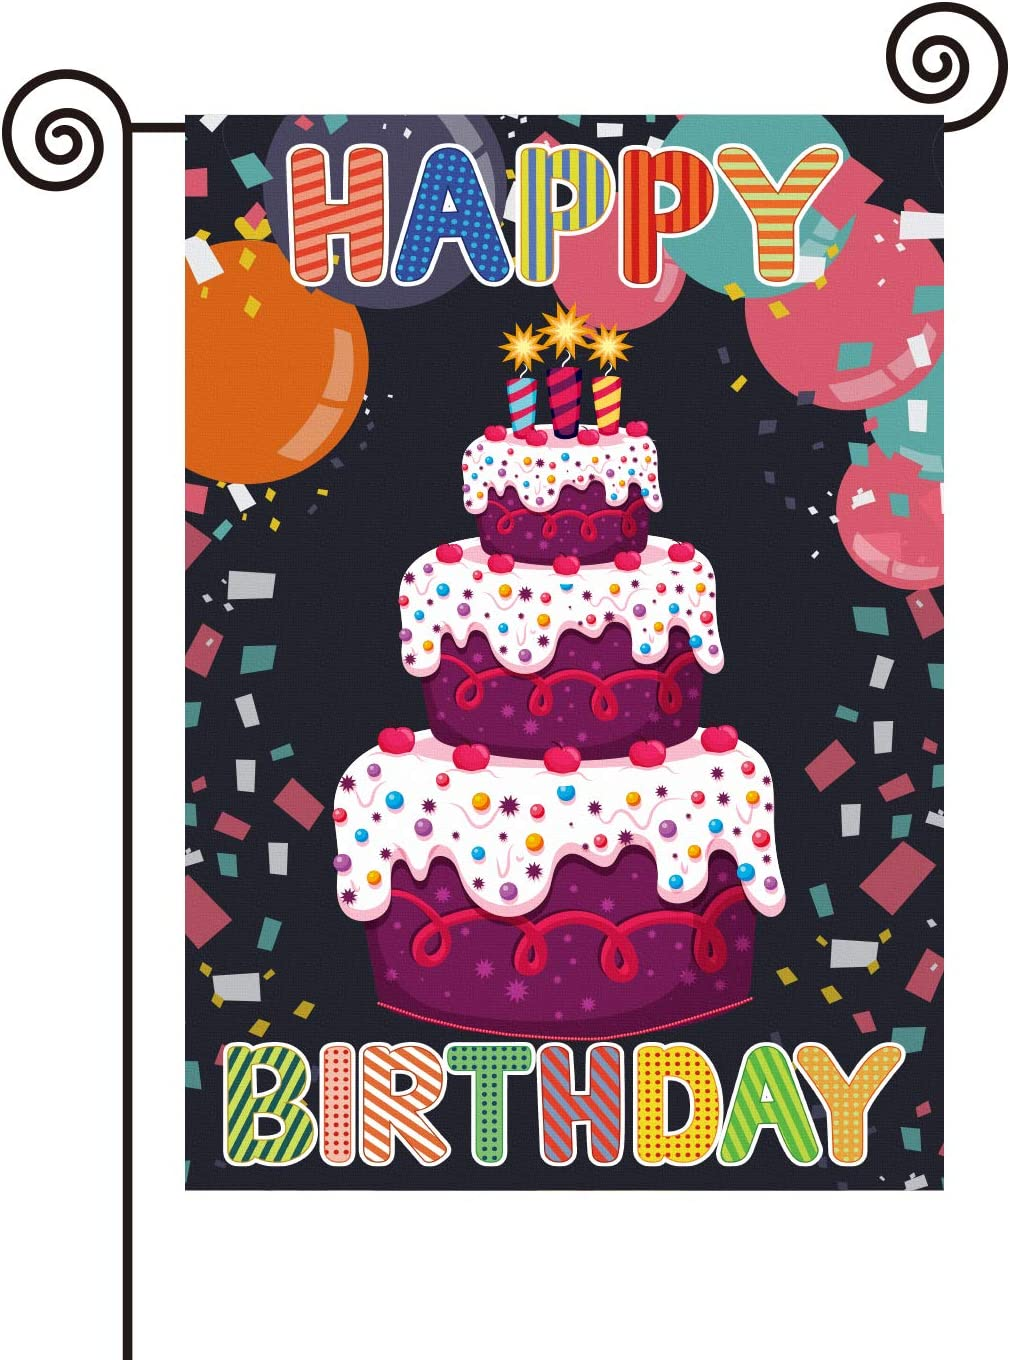 PANHUI Happy Birthday Garden Flag,12 x 18 Inch Double Sided Outdoor Yard Lawn Garden Flag for Birthday Party House Home Decor